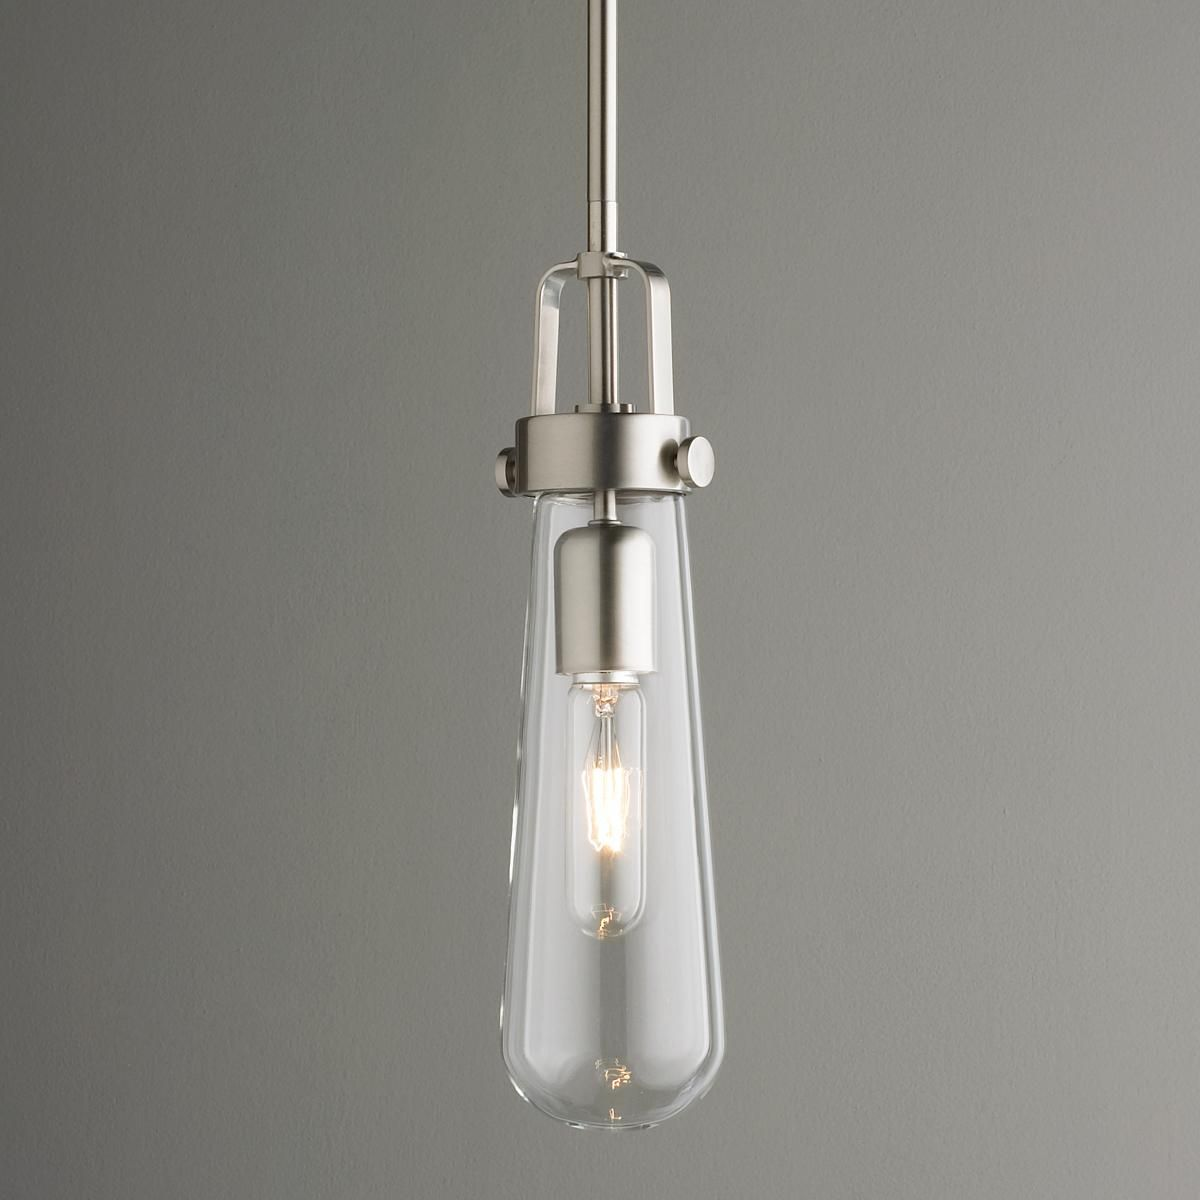 Clear glass vial pendant light blending modern aesthetic with clear glass vial pendant light blending modern aesthetic with industrial chic design this hanging aloadofball Image collections